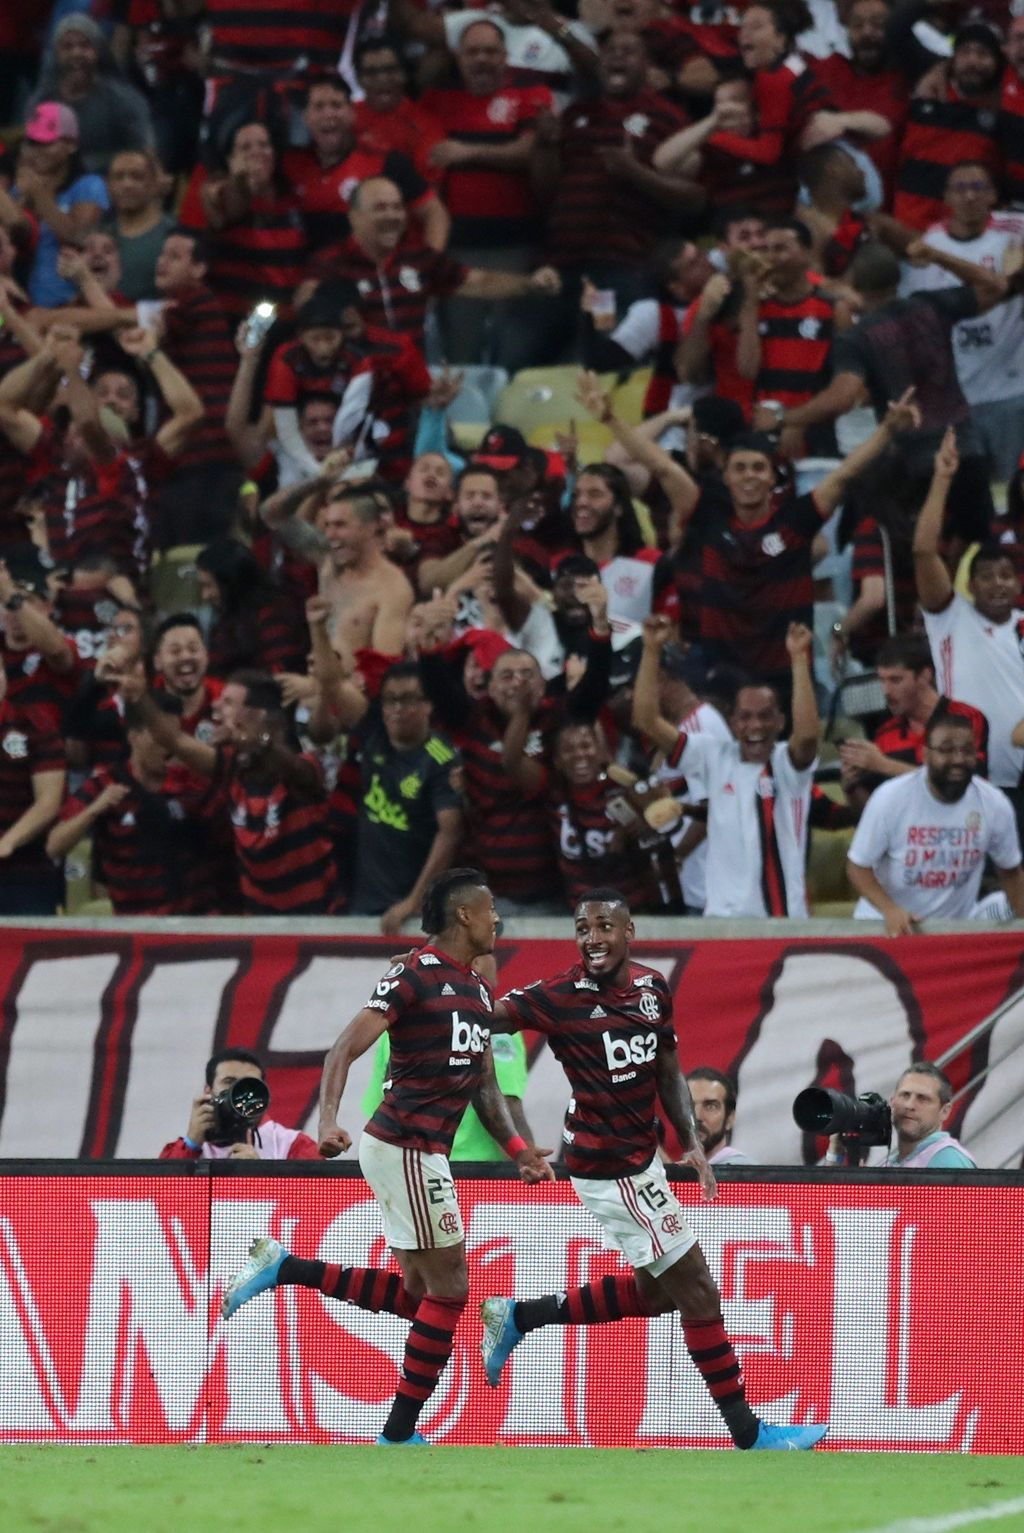 Flamengo se impone como local al Internacional